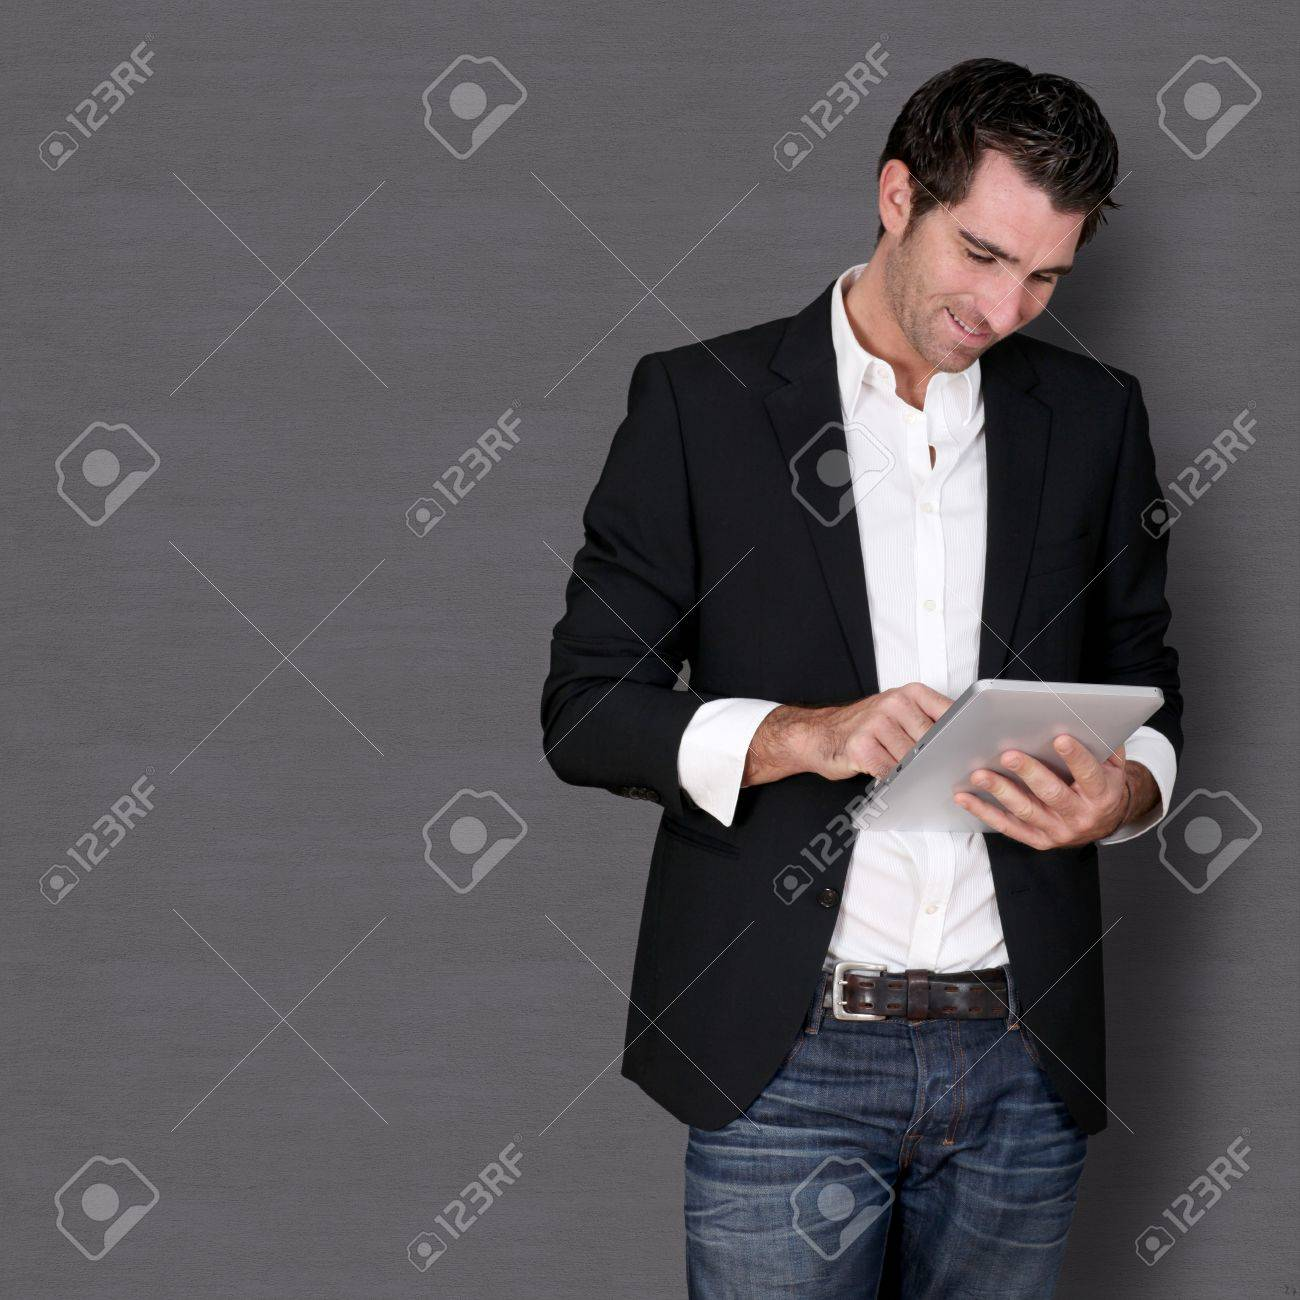 Smiling man standing on dark background Stock Photo - 11283823